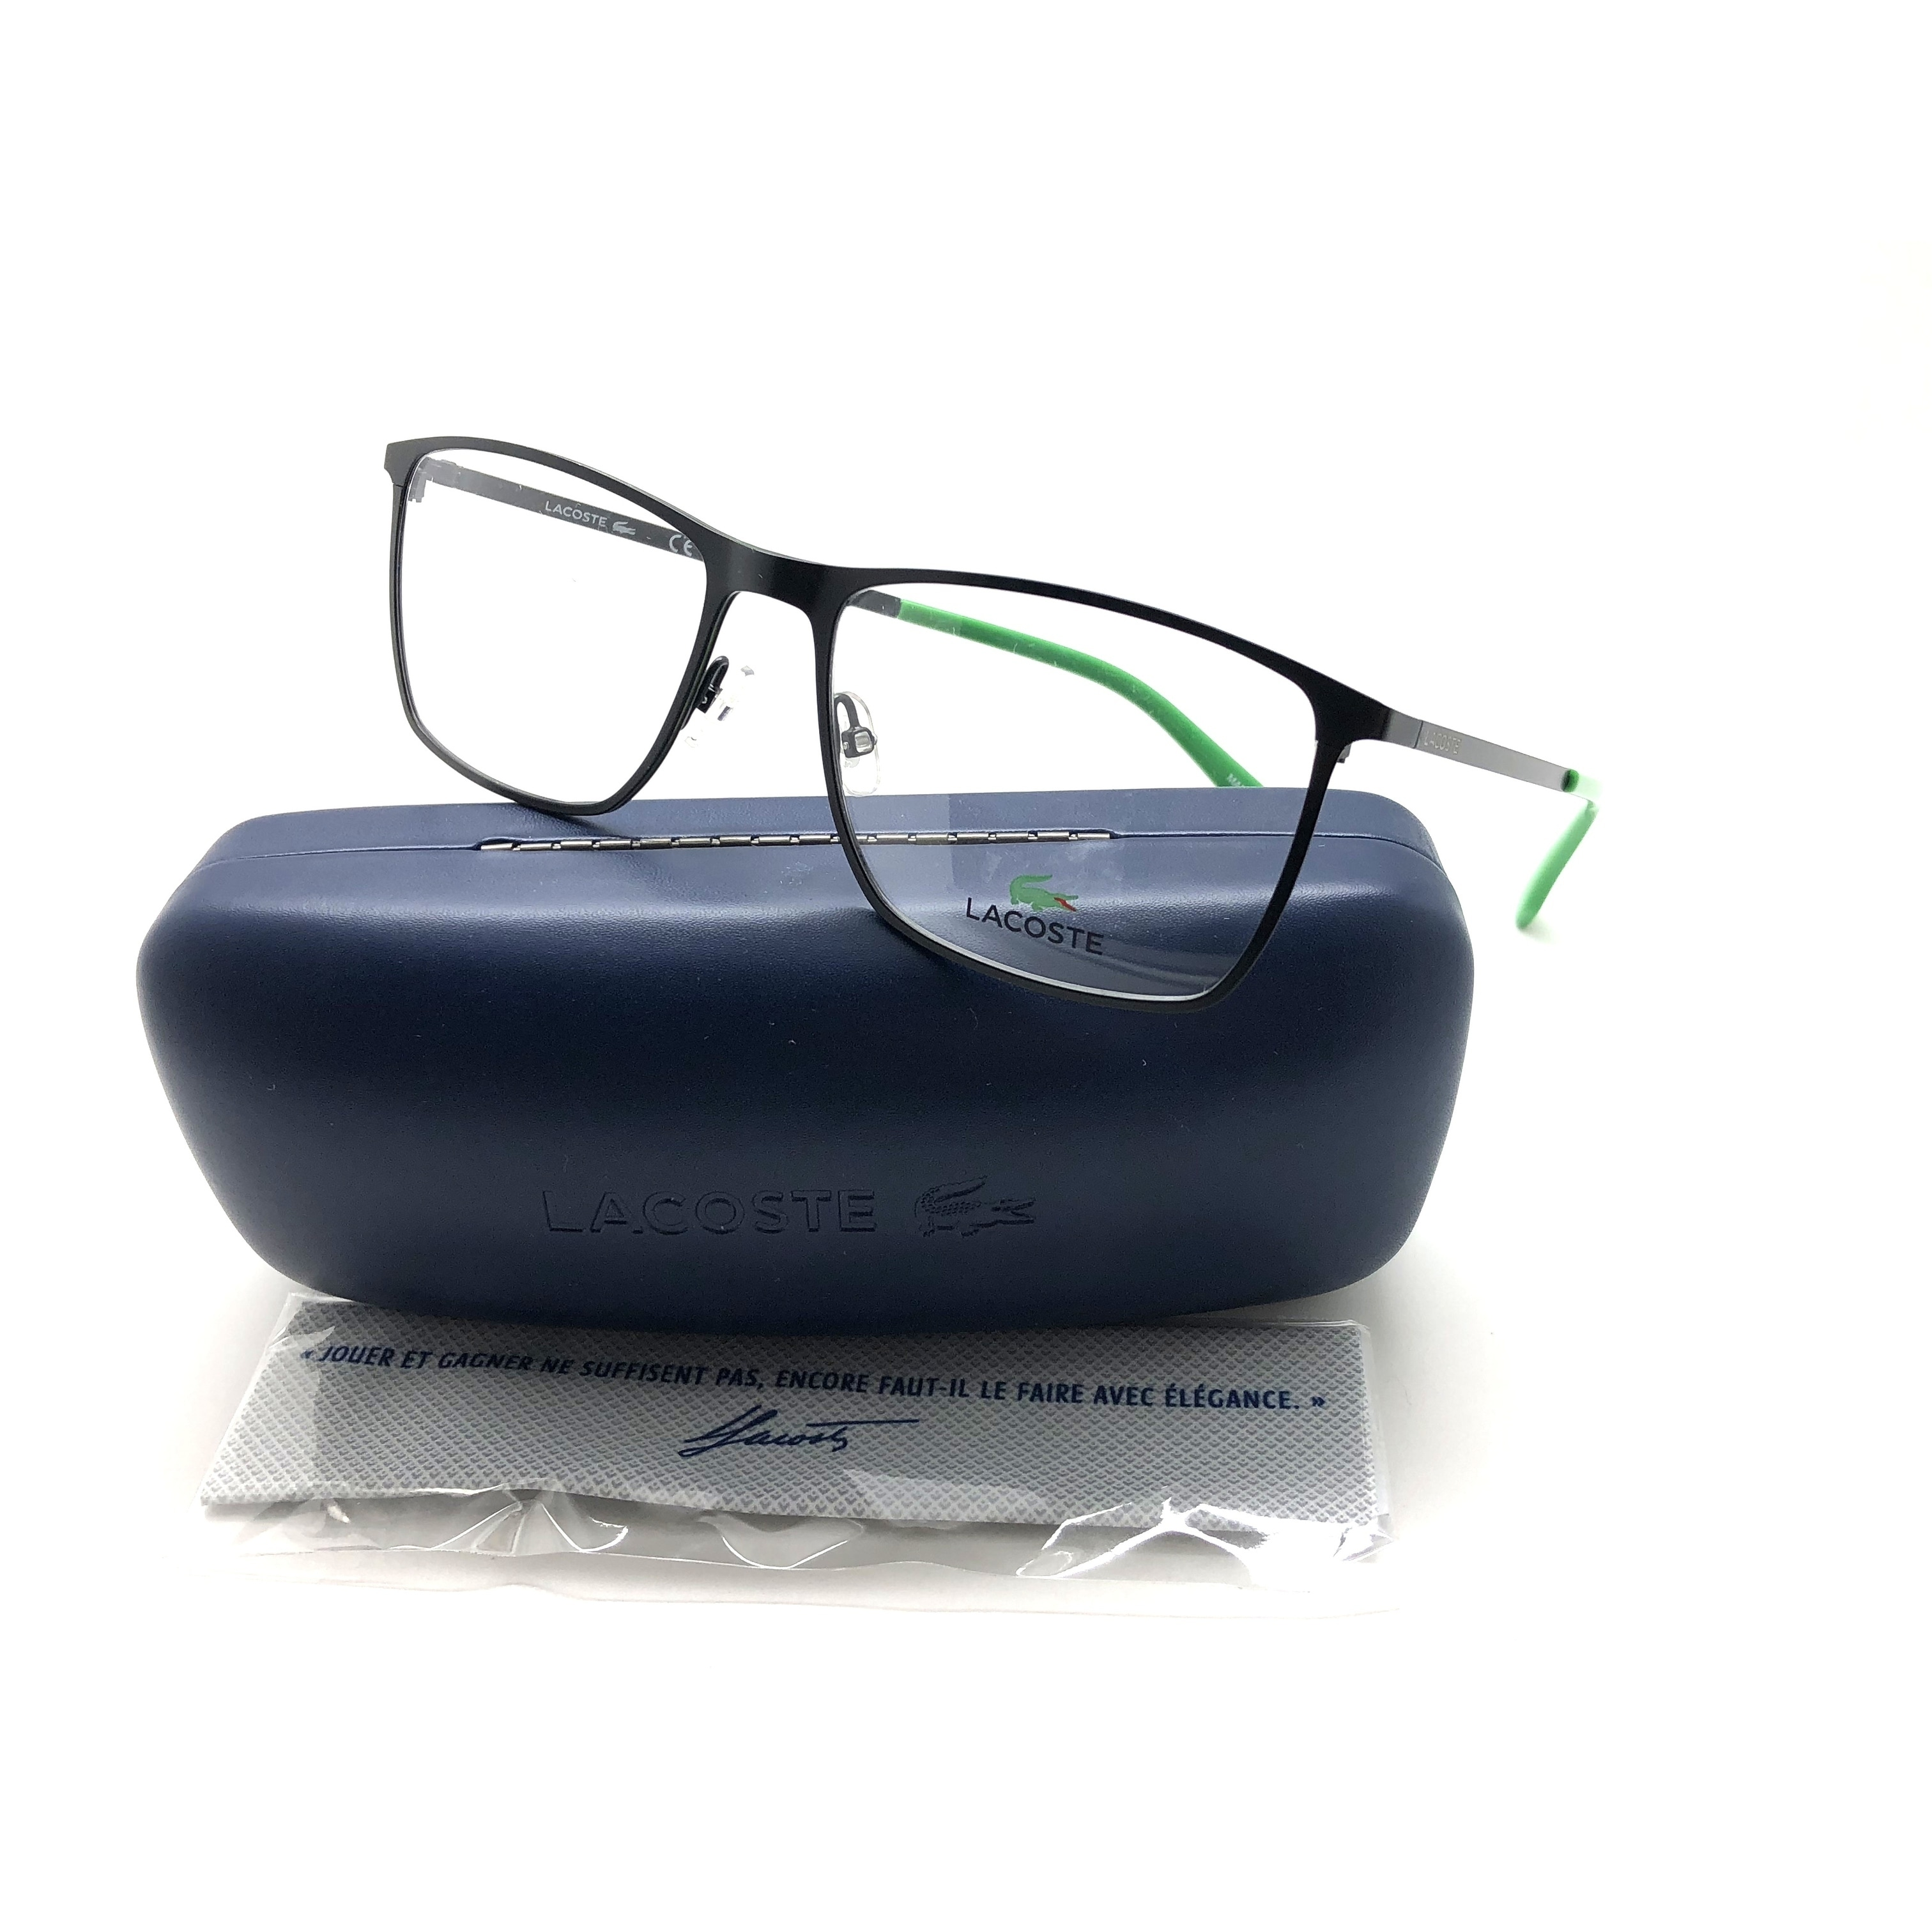 9759879ac2ad1b Shop lacoste mens eyeglasses frames matte black green free shipping today  jpg 3024x3024 Lacoste round frames